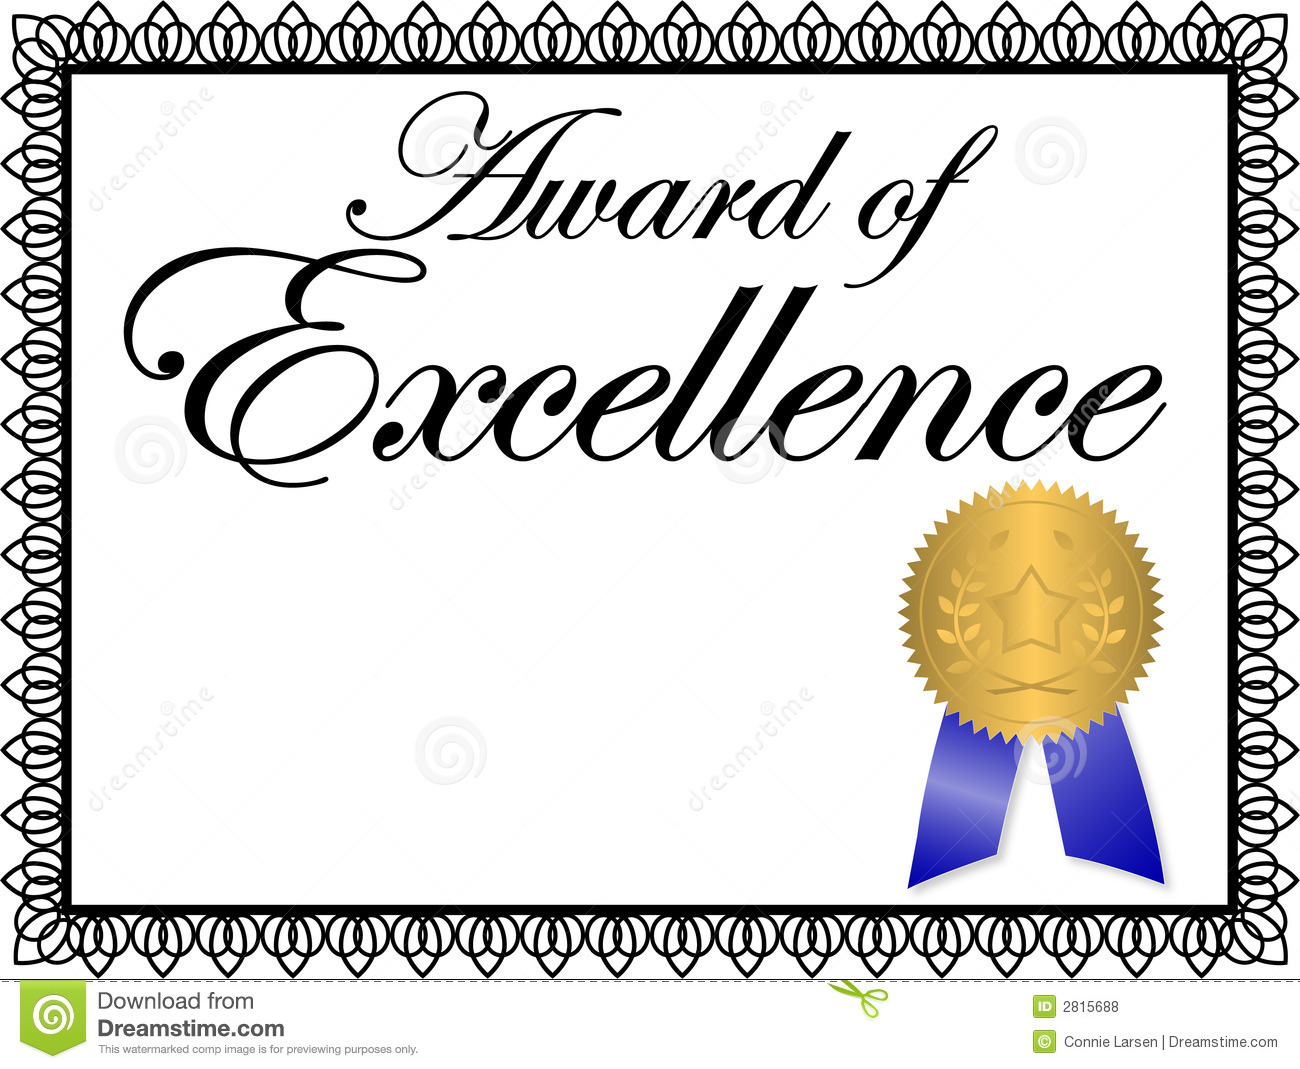 Award clipart certificate. Excellence